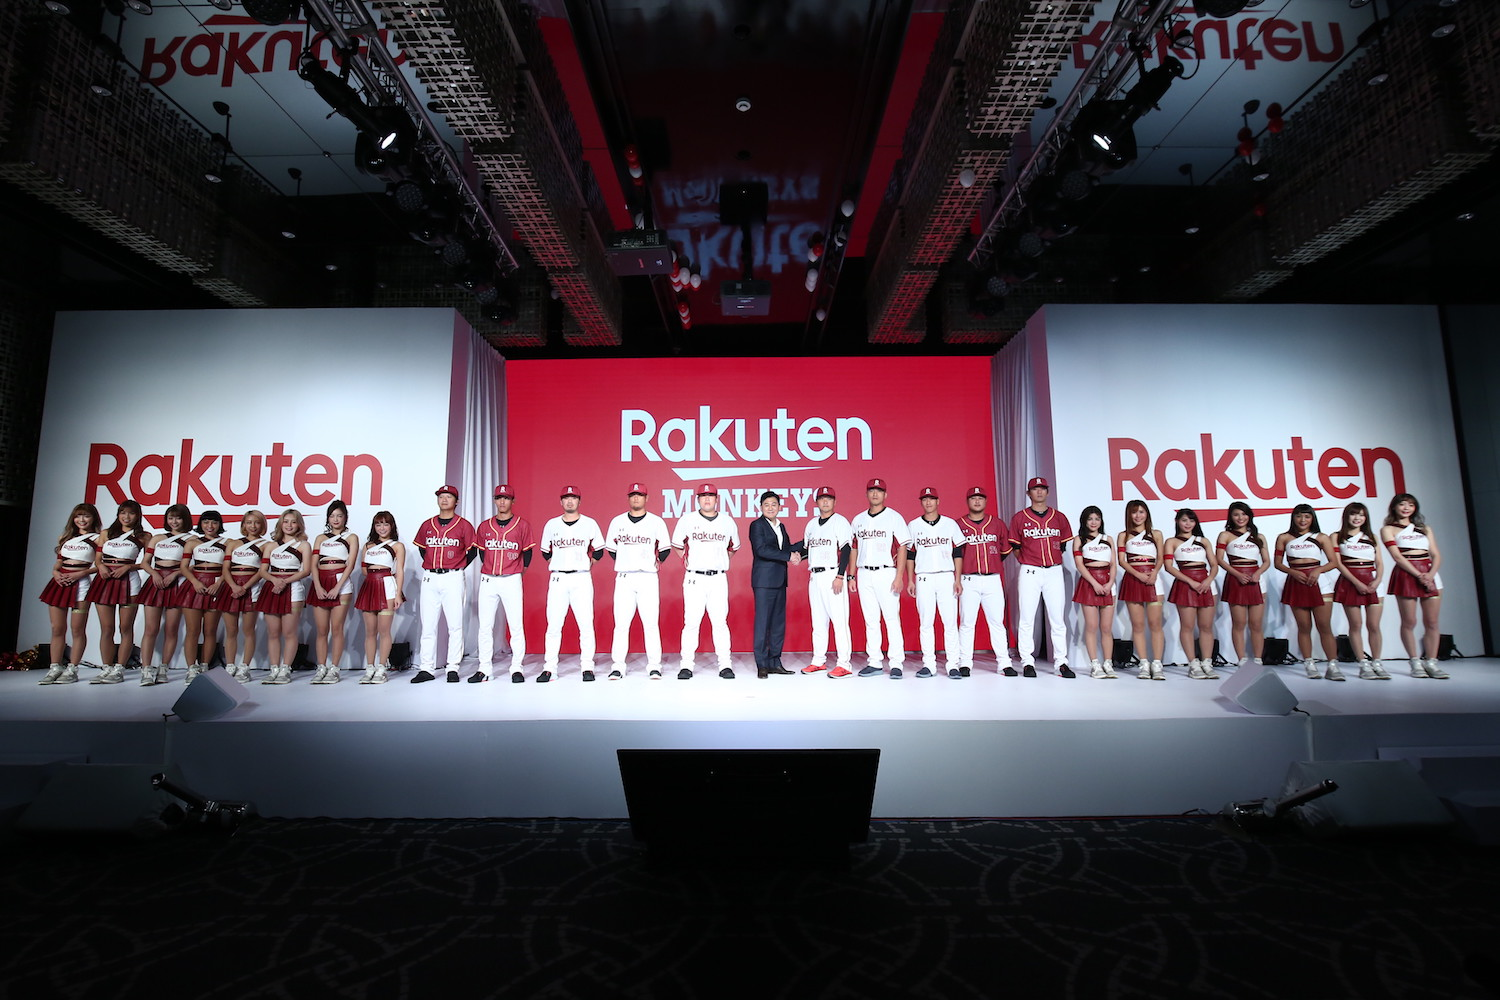 Rakuten CEO Mickey Mikitani (center), took to the stage in December 2019 to unveil the new name, logo and jersey design of CPBL juggernauts, the Rakuten Monkeys.